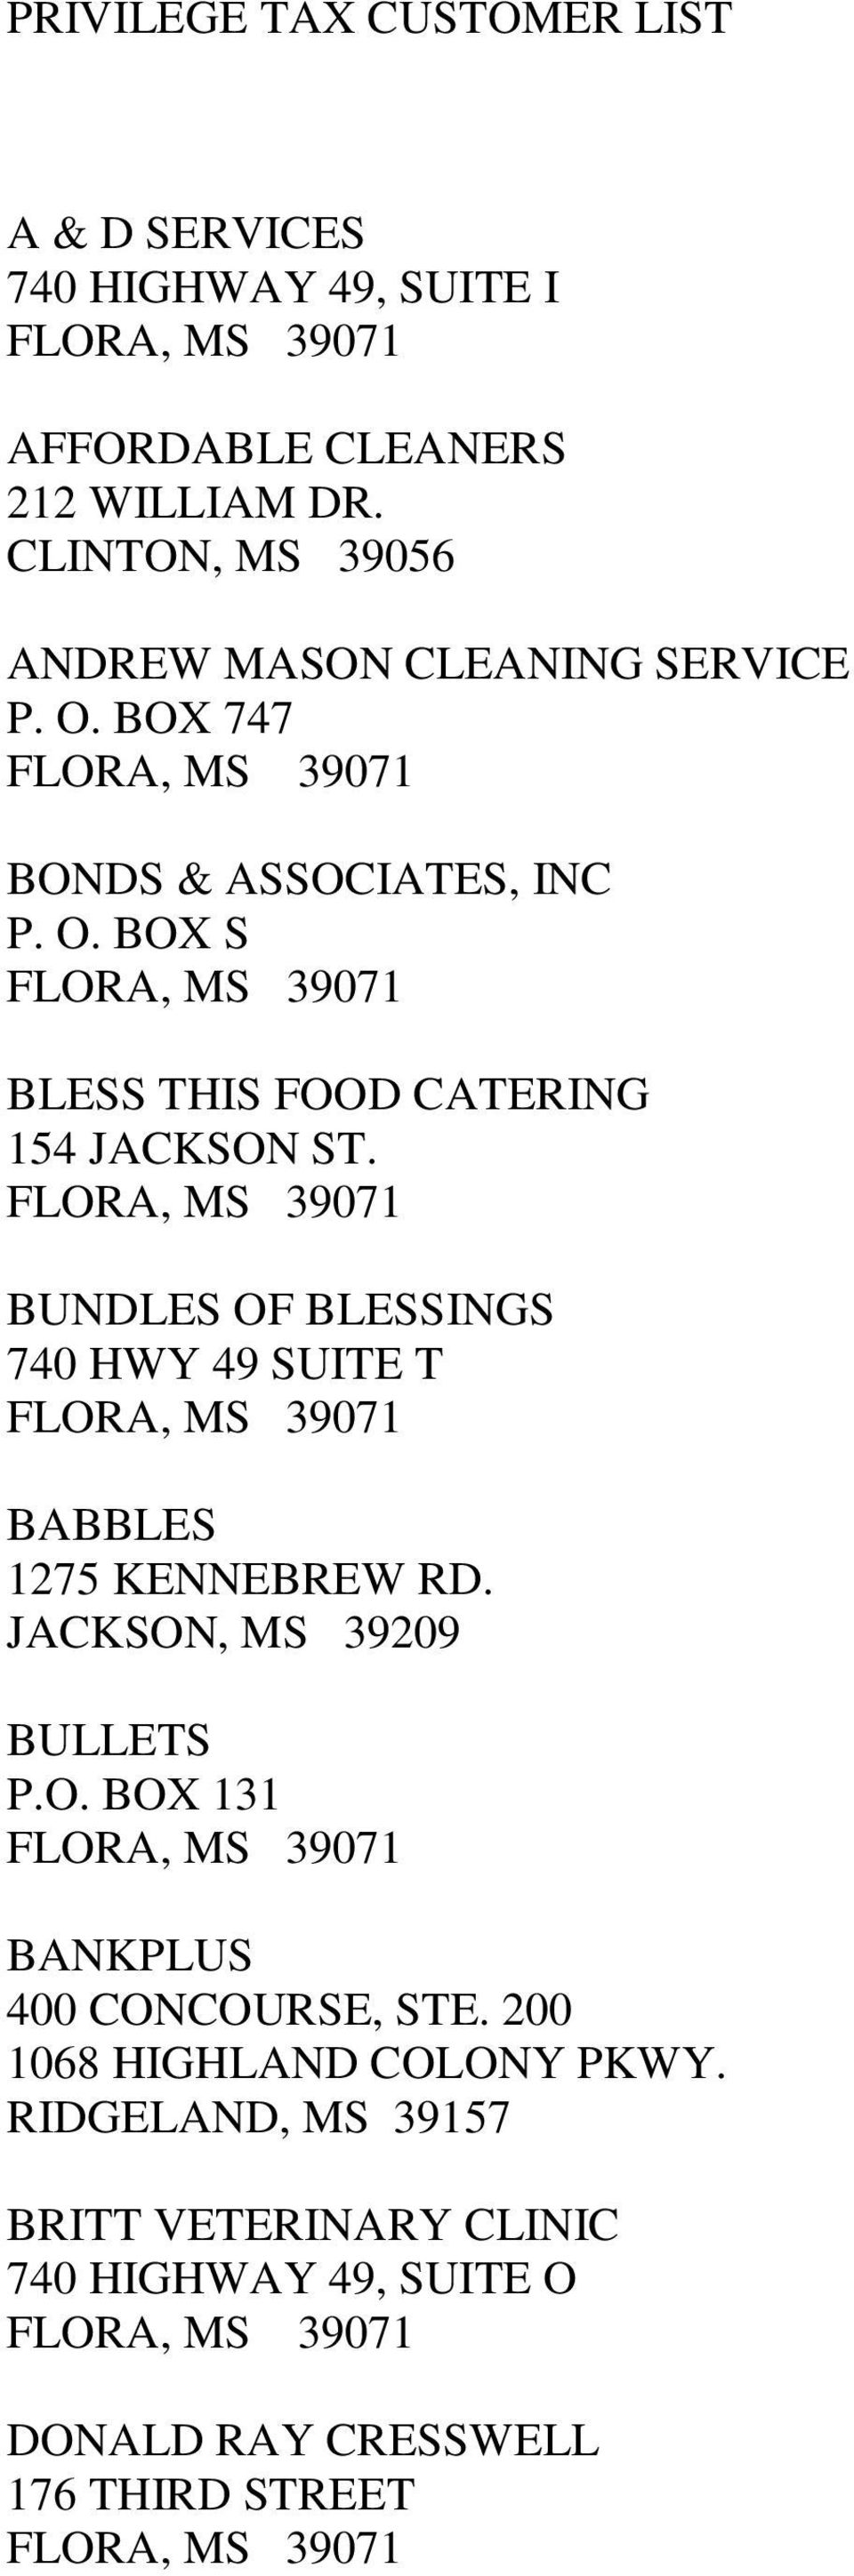 BUNDLES OF BLESSINGS 740 HWY 49 SUITE T BABBLES 1275 KENNEBREW RD. JACKSON, MS 39209 BULLETS P.O. BOX 131 BANKPLUS 400 CONCOURSE, STE.